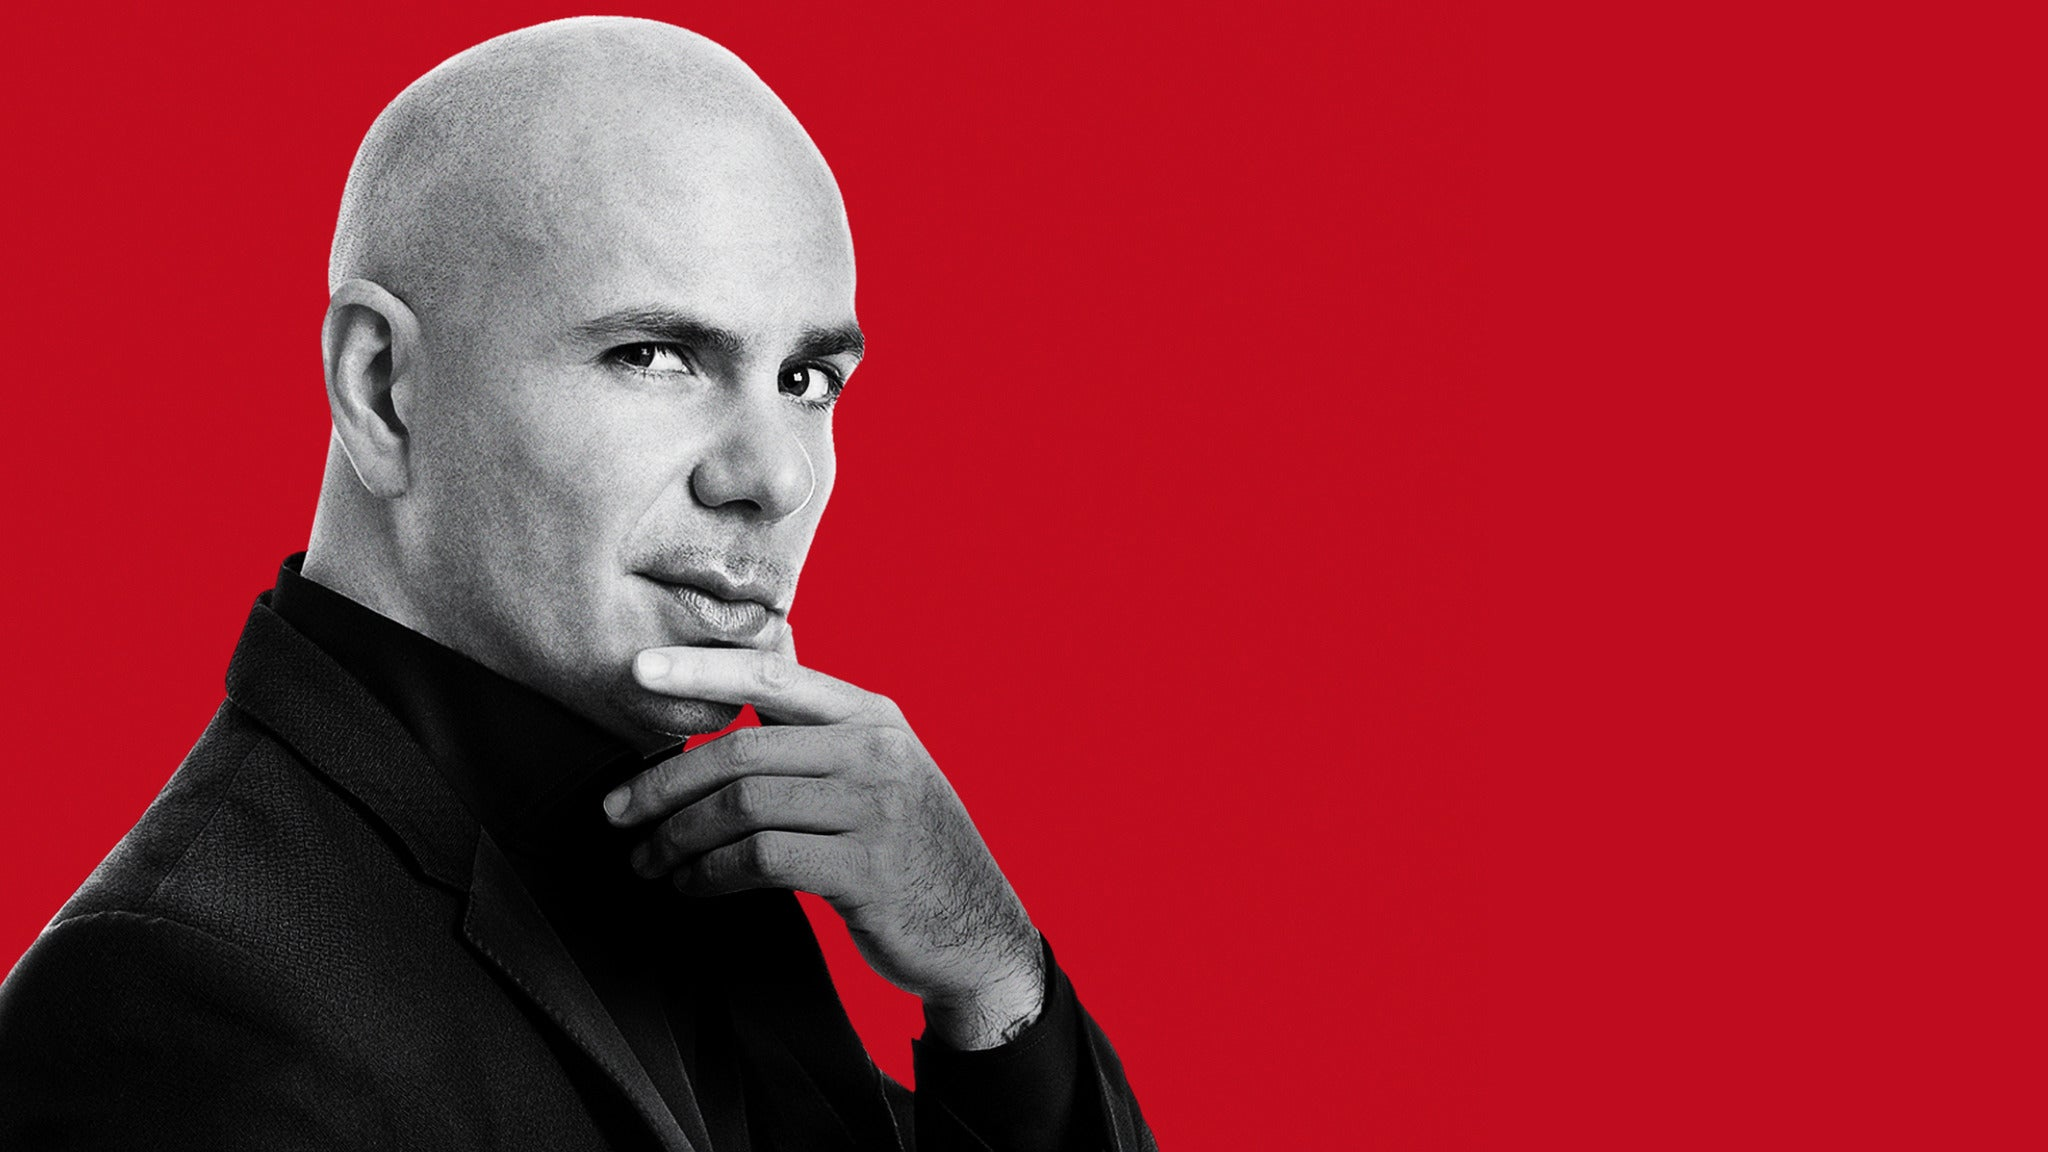 Hard Rock Live Presents an Evening with Pitbull